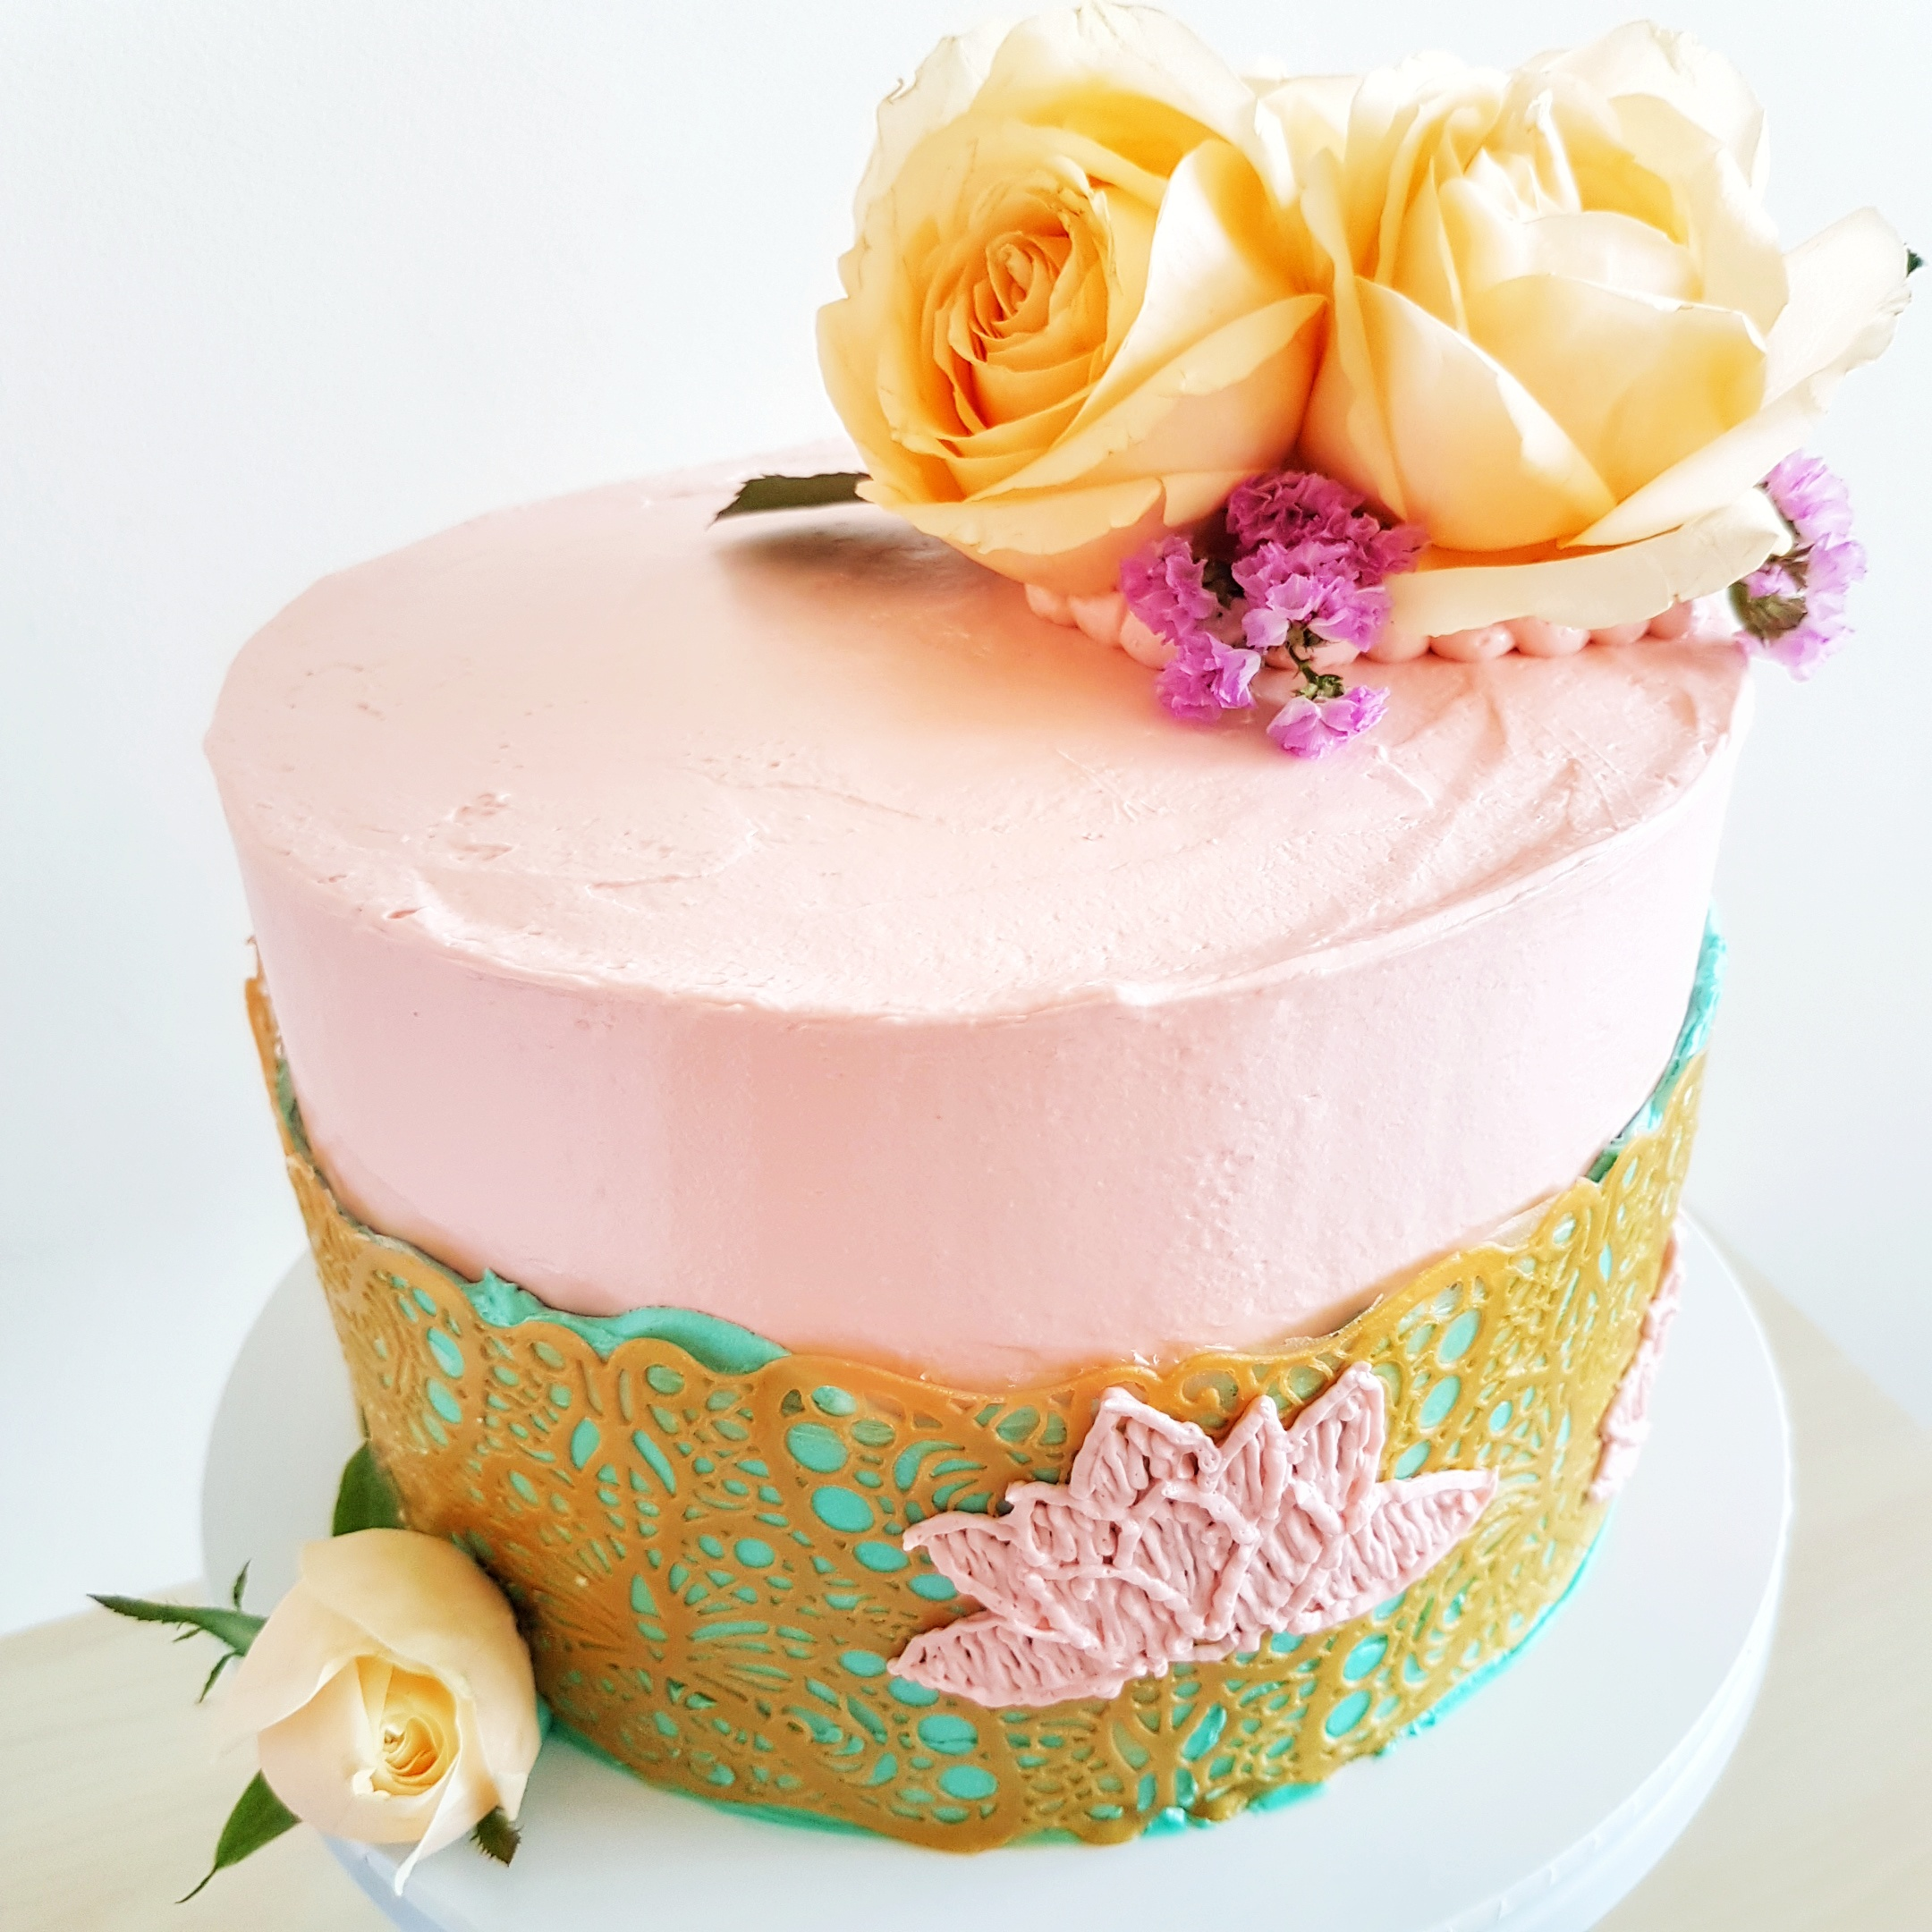 Floral Cake with Lace and Embroidery by The Baking Experiment